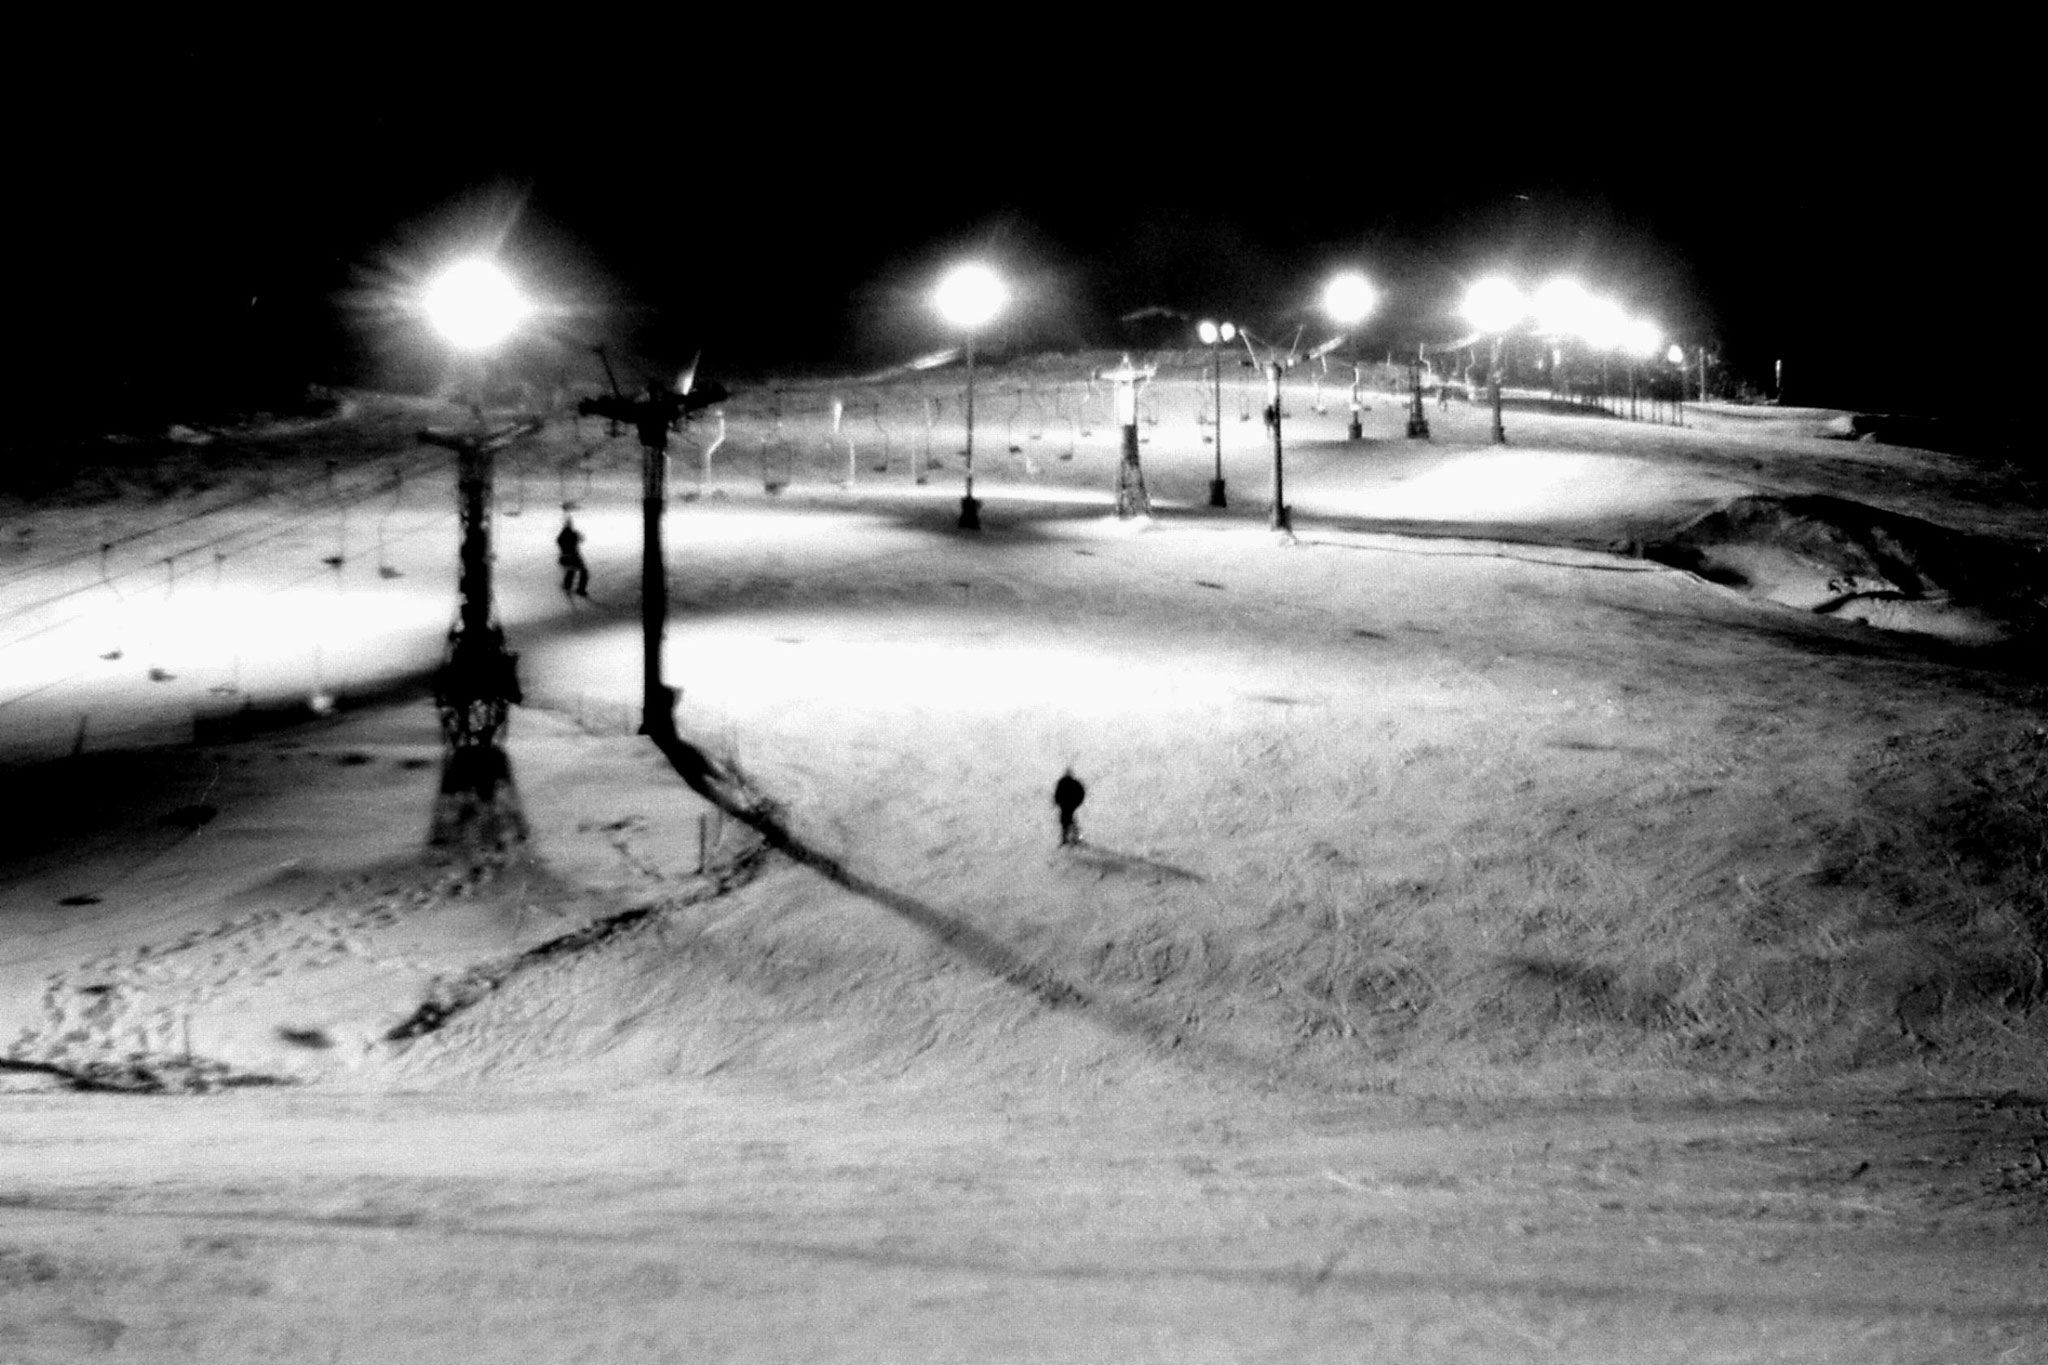 11/1/1989: 3: Floodlit ski slope outside hostel at Asahigawa